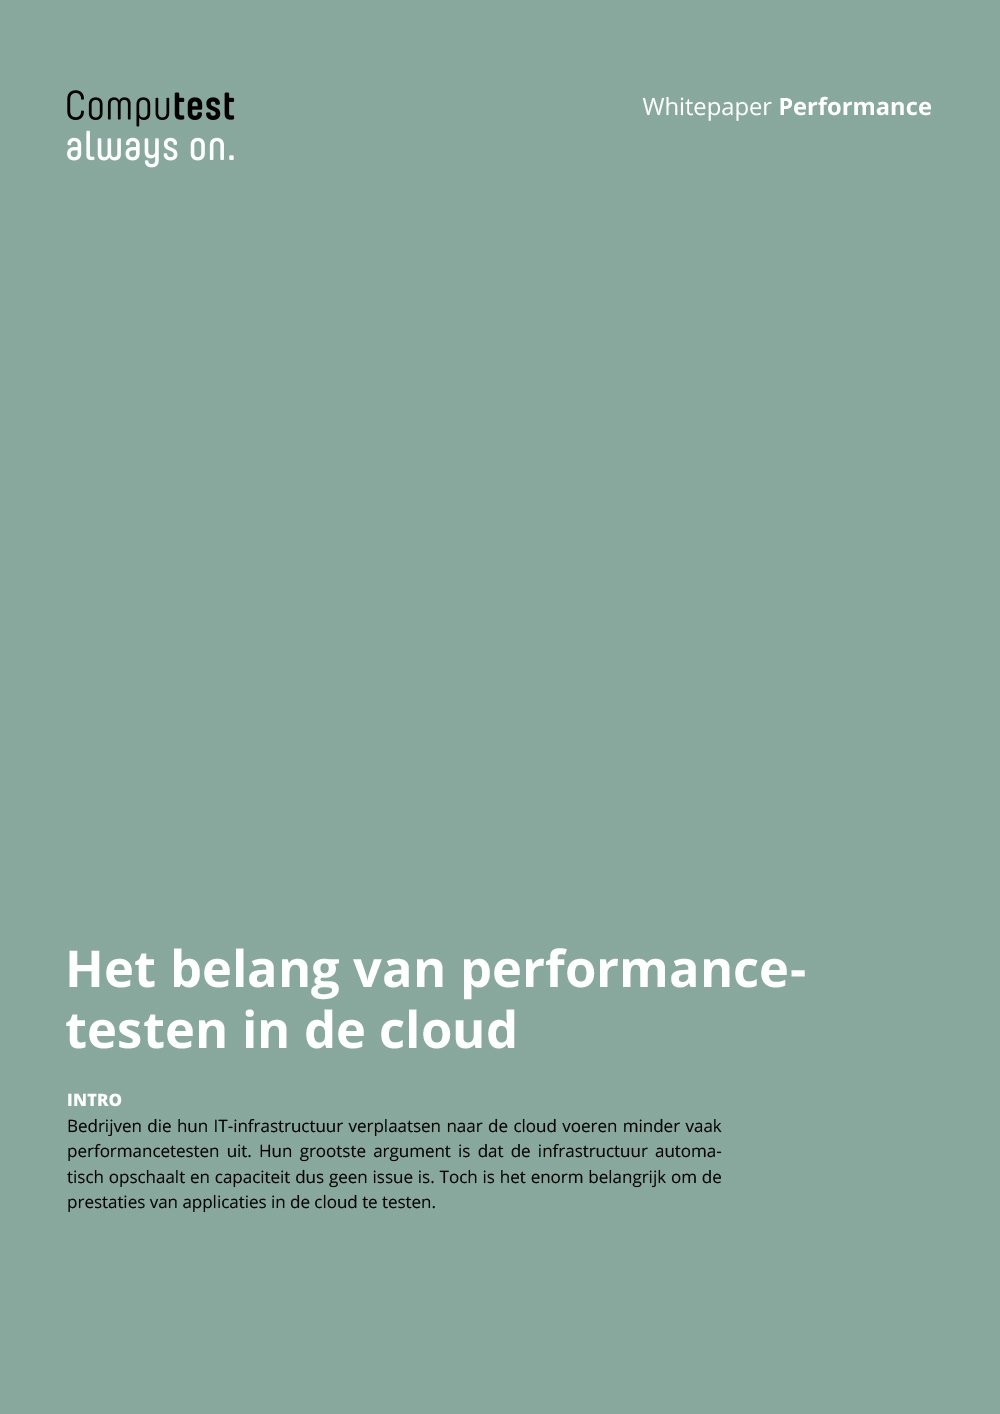 Performancetest in de cloud